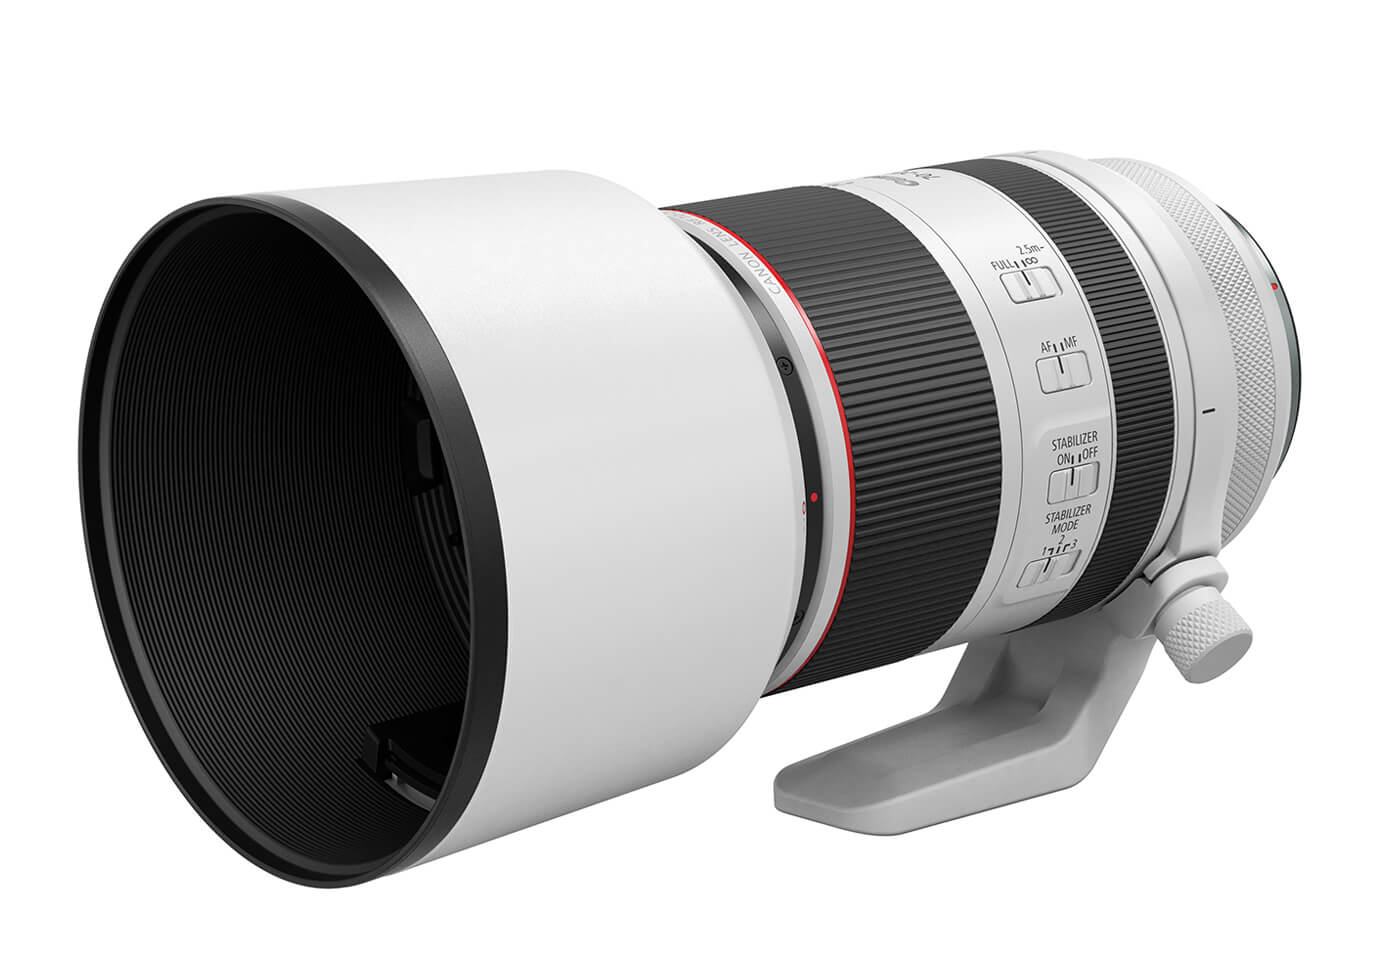 Product image of RF 70-200mm f2.8 L IS USM telephoto lens with hood